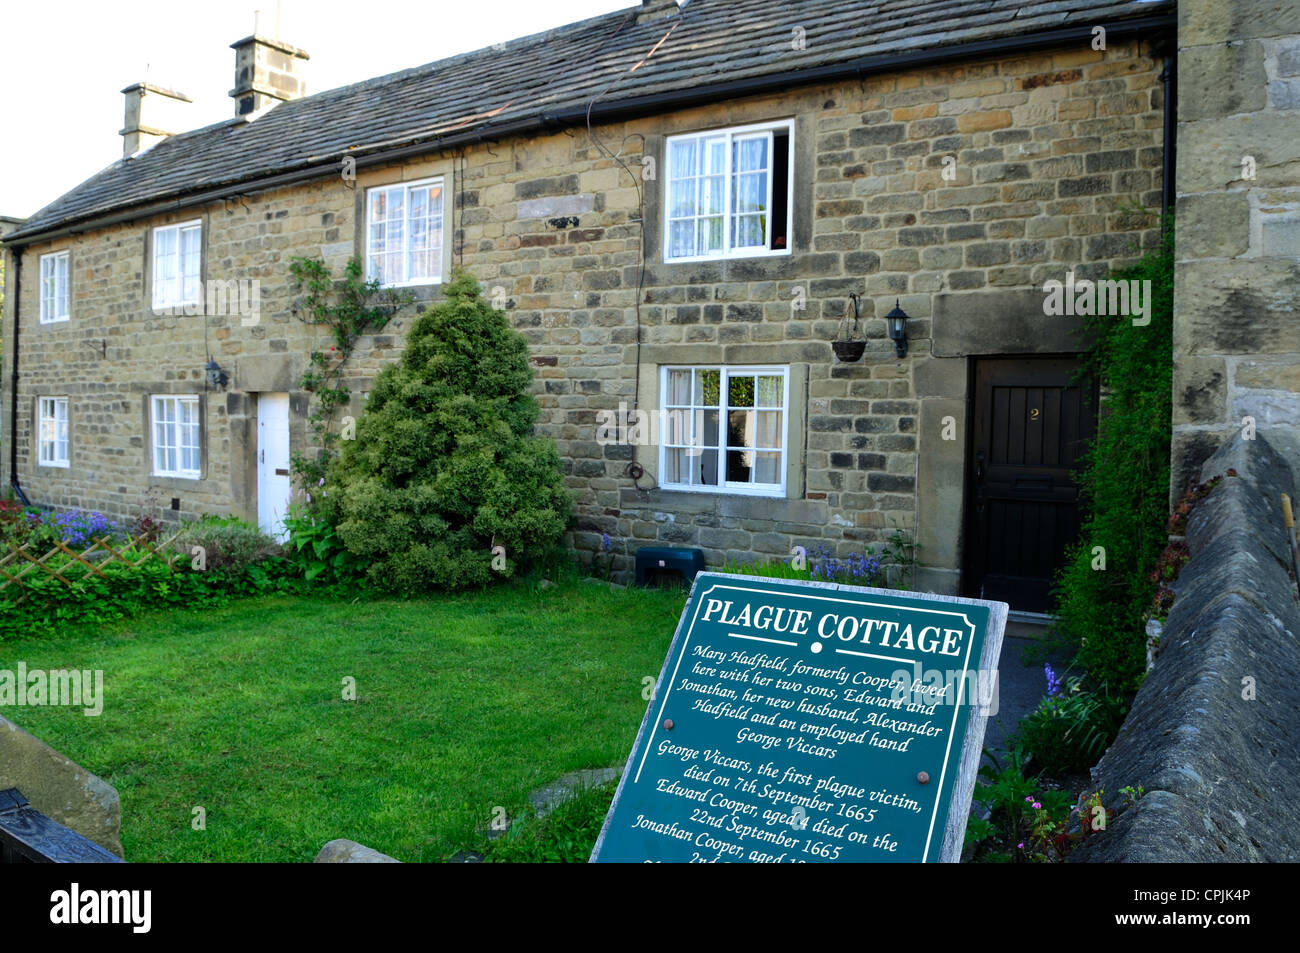 Eyam Plague Village Derbyshire England.Plague Cottage's . - Stock Image